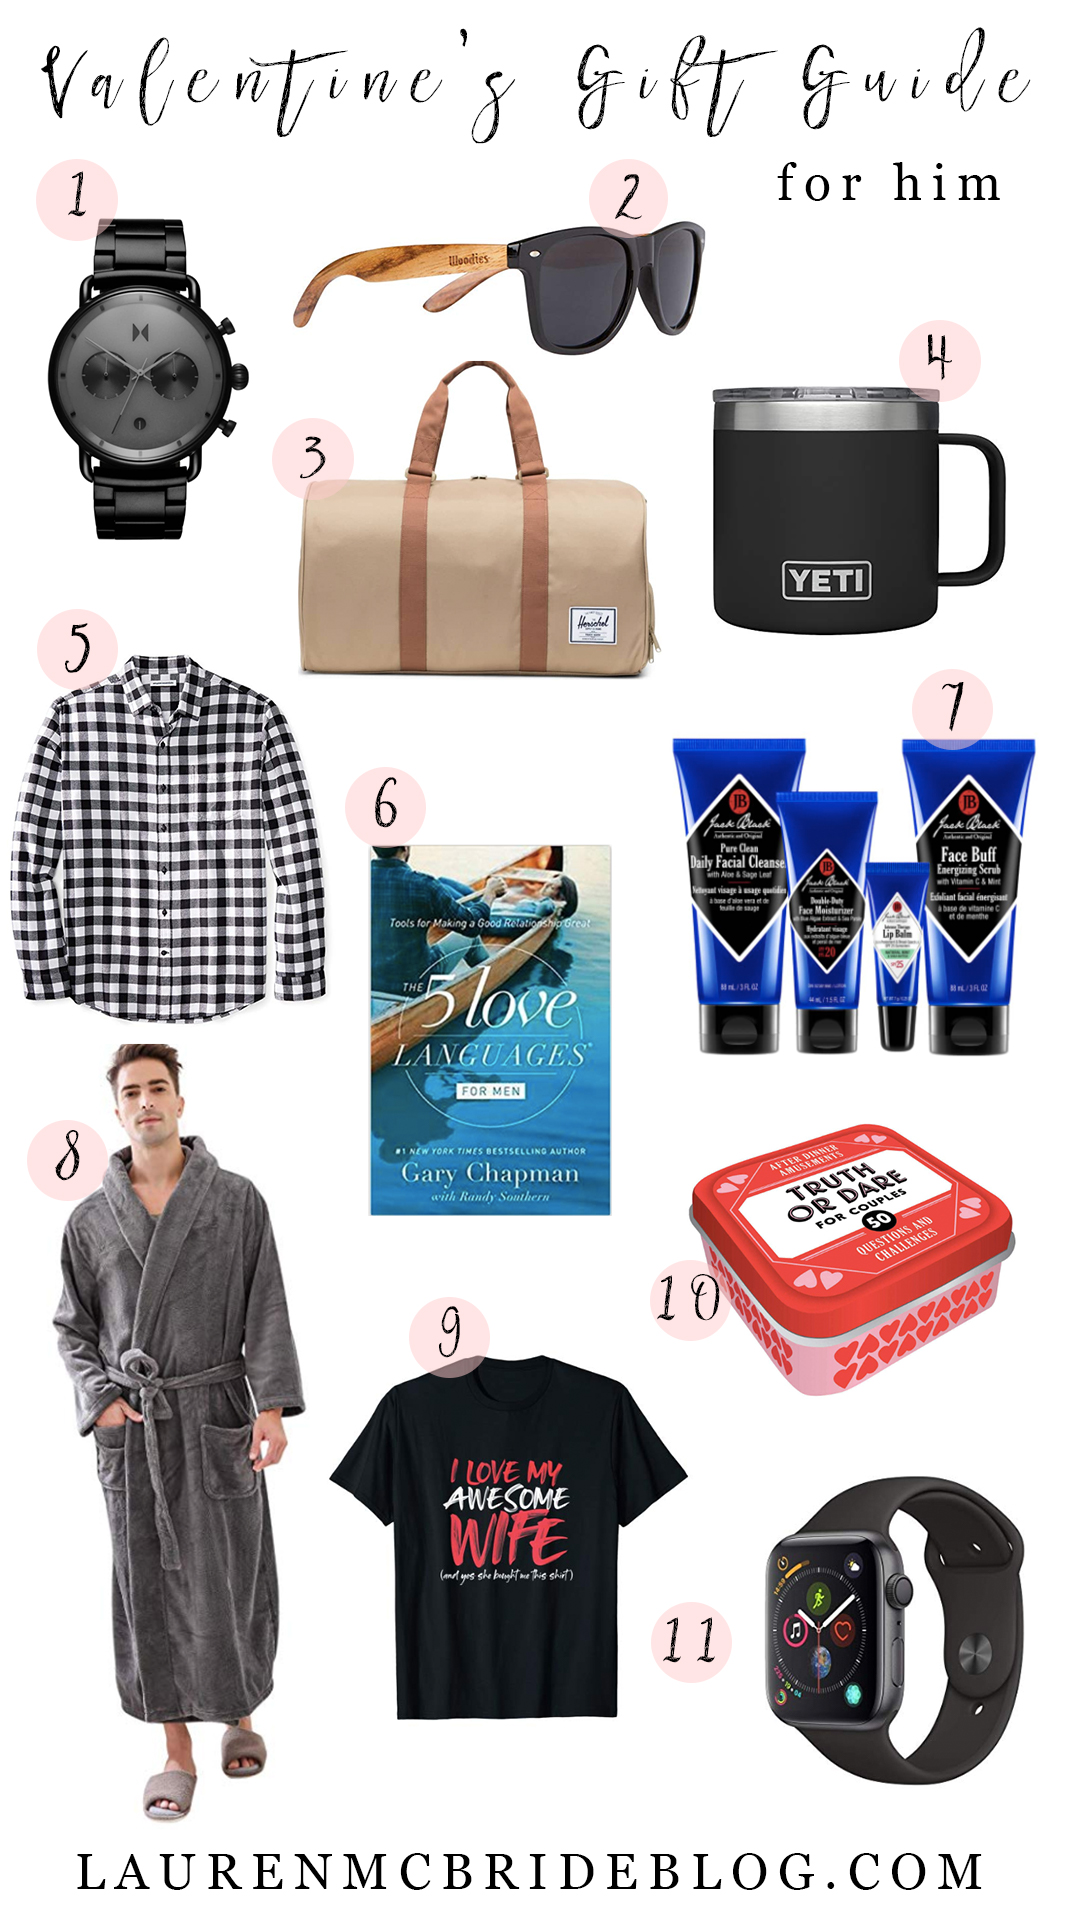 Connecticut life and style blogger Lauren McBride shares a Valentine's Day gift guide for men including a variety of price point and gift options.